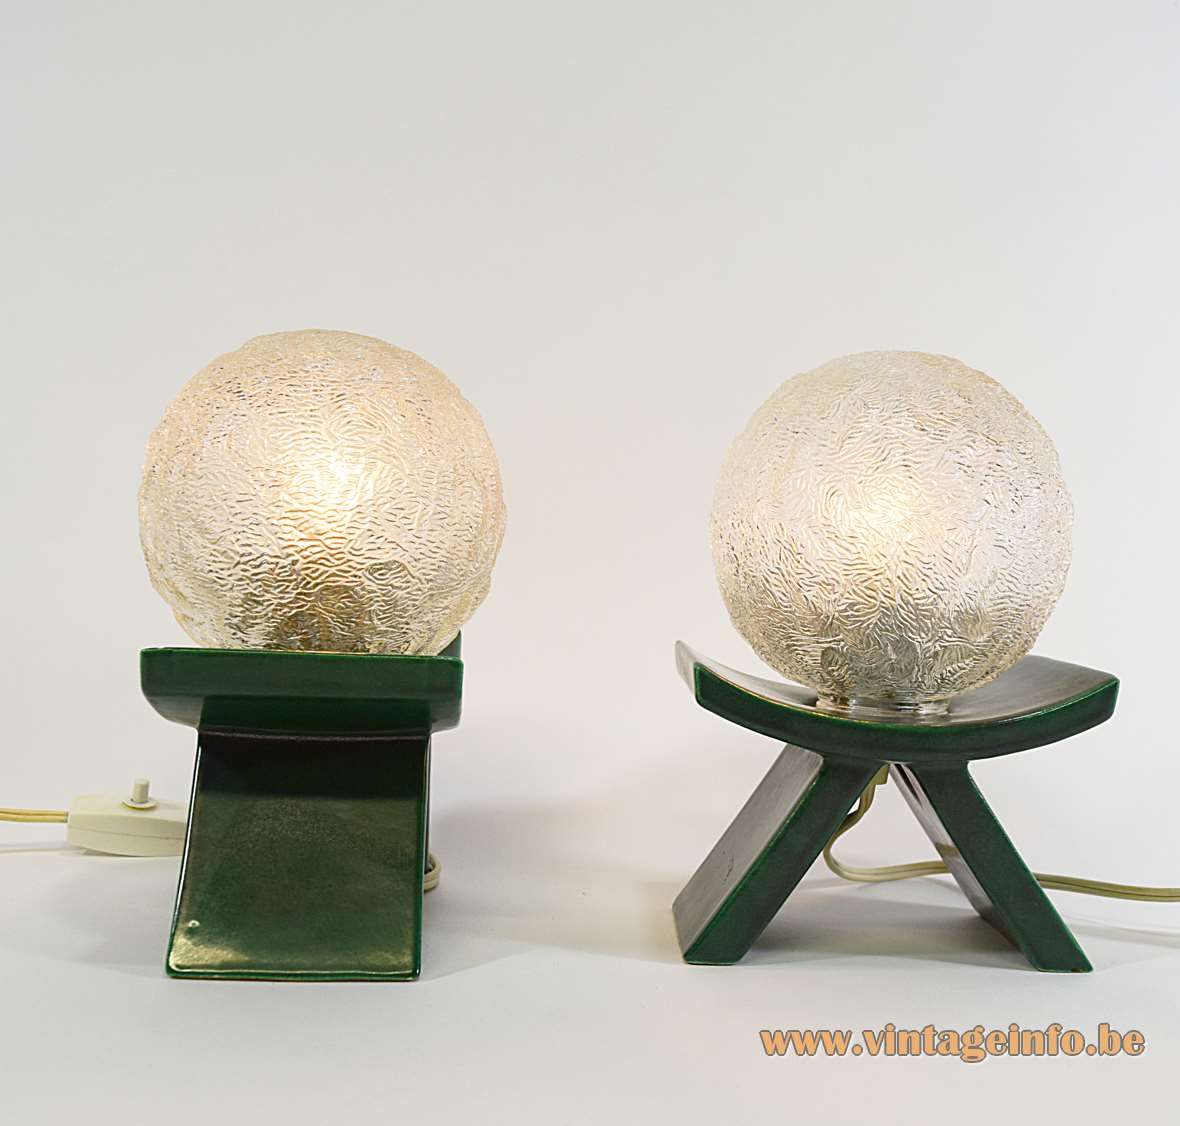 Cari Zalloni green bedside table lamps Steuler Keramik embossed glass globes 1960s 1970s Germany E14 socket